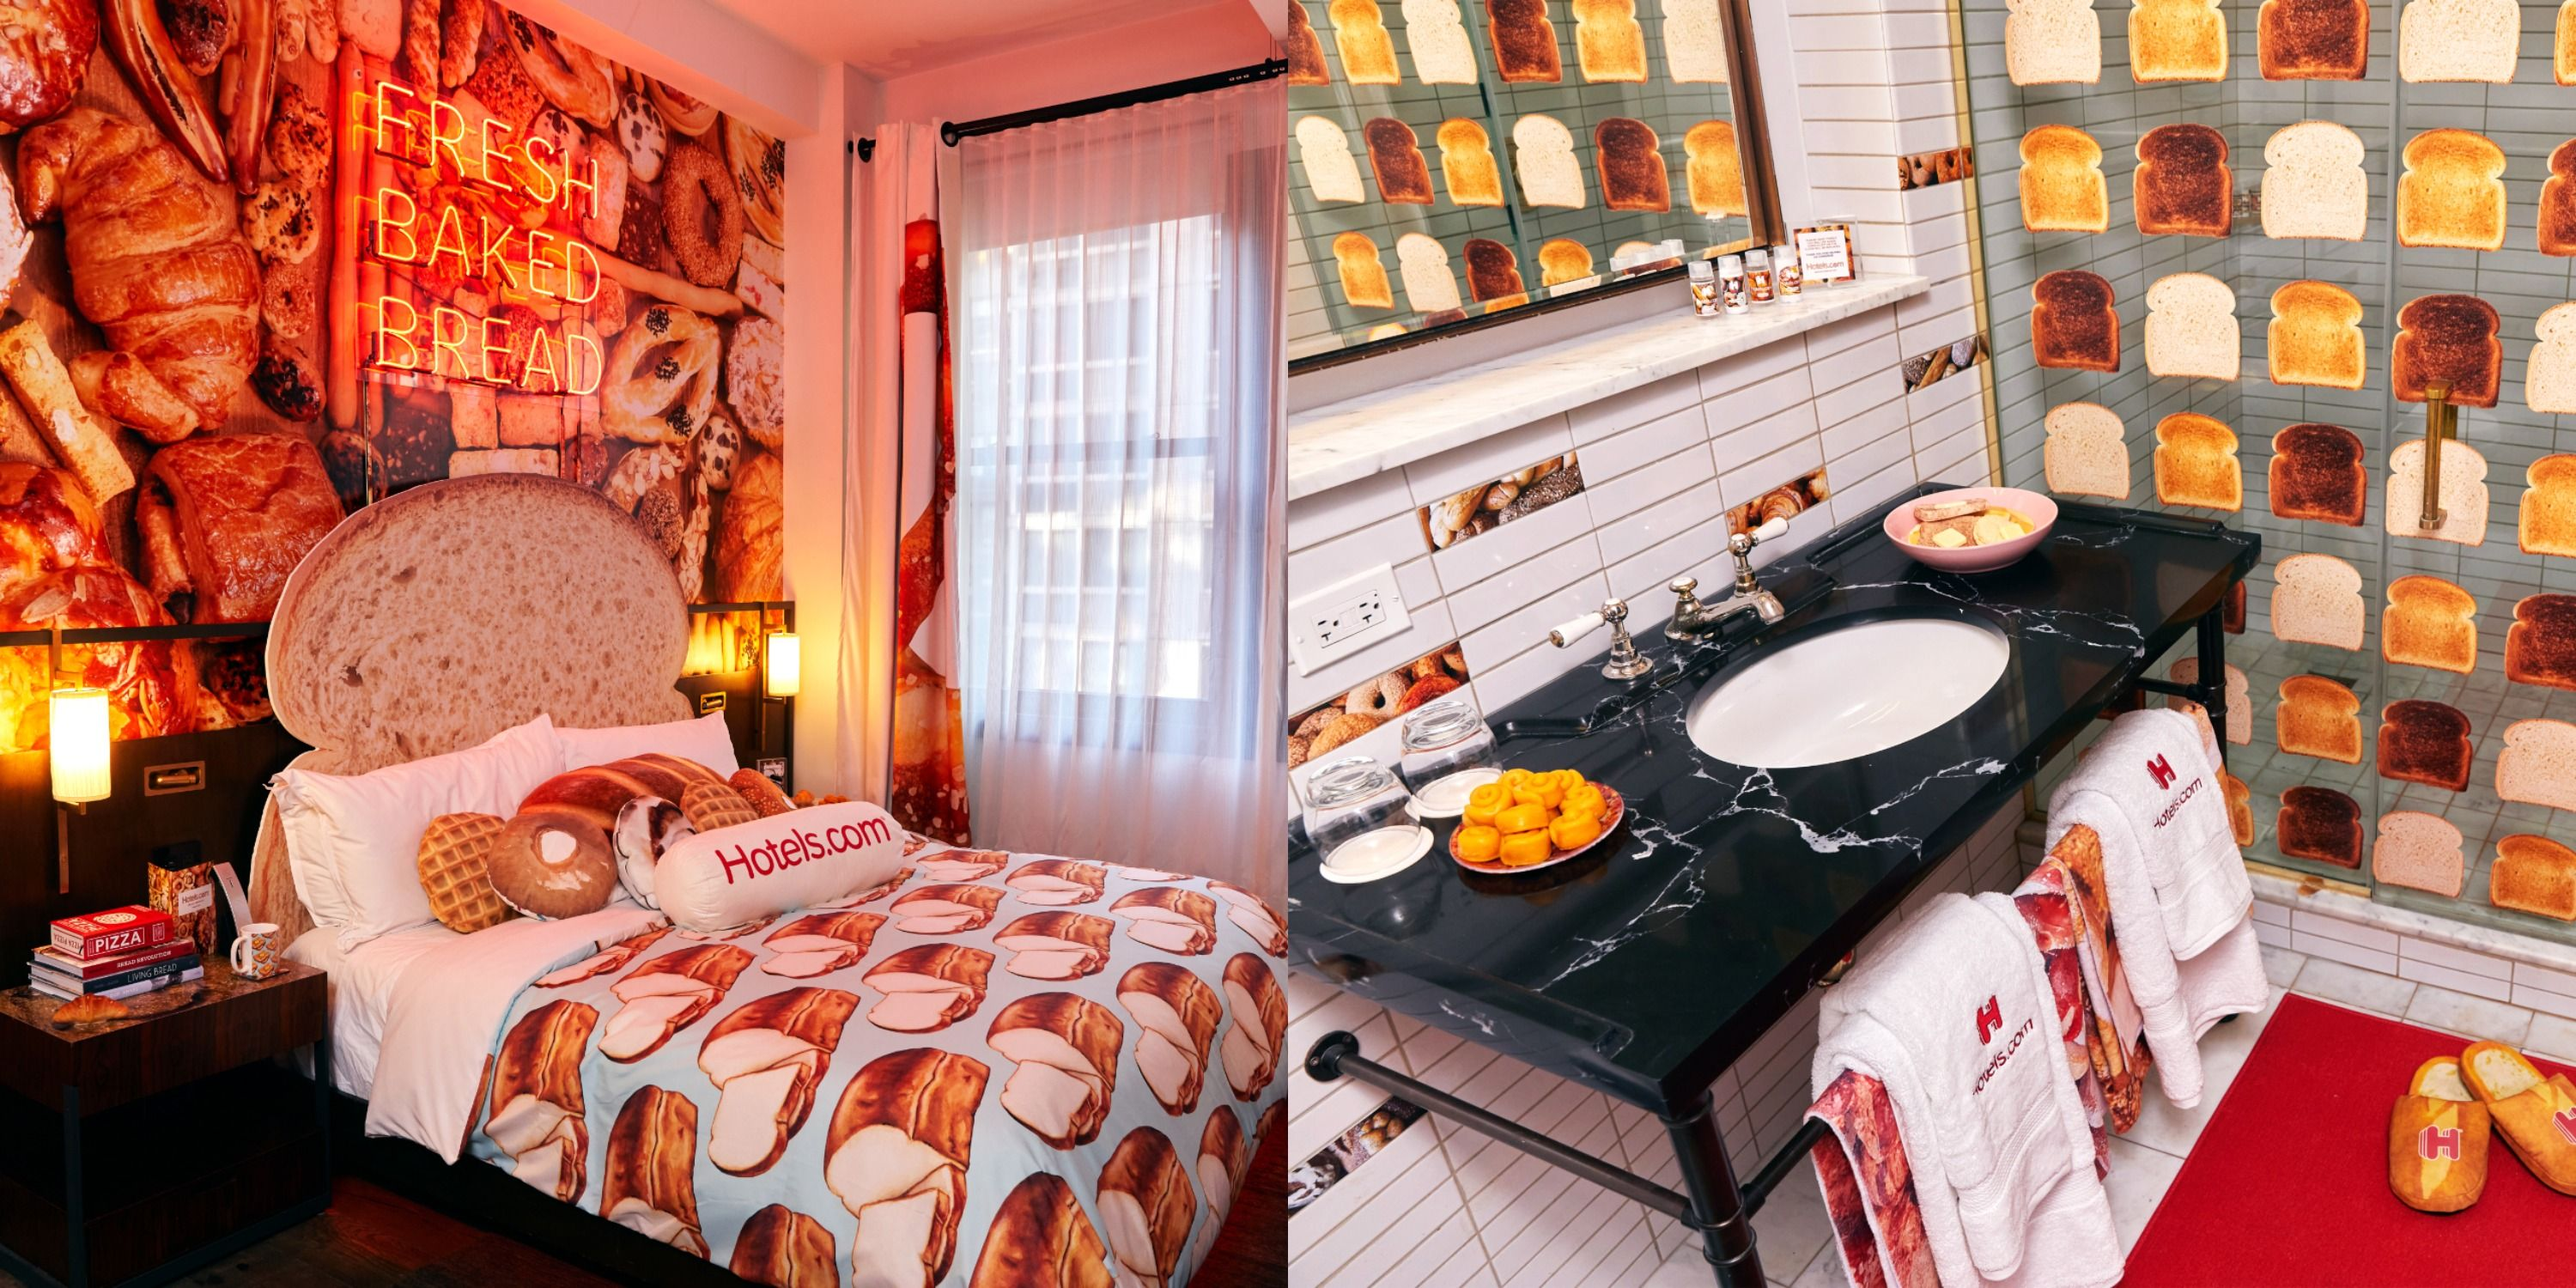 This Carb-Themed Hotel In New York Is Covered In Doughnuts, Bagels, And Pastries That You Can Really Eat